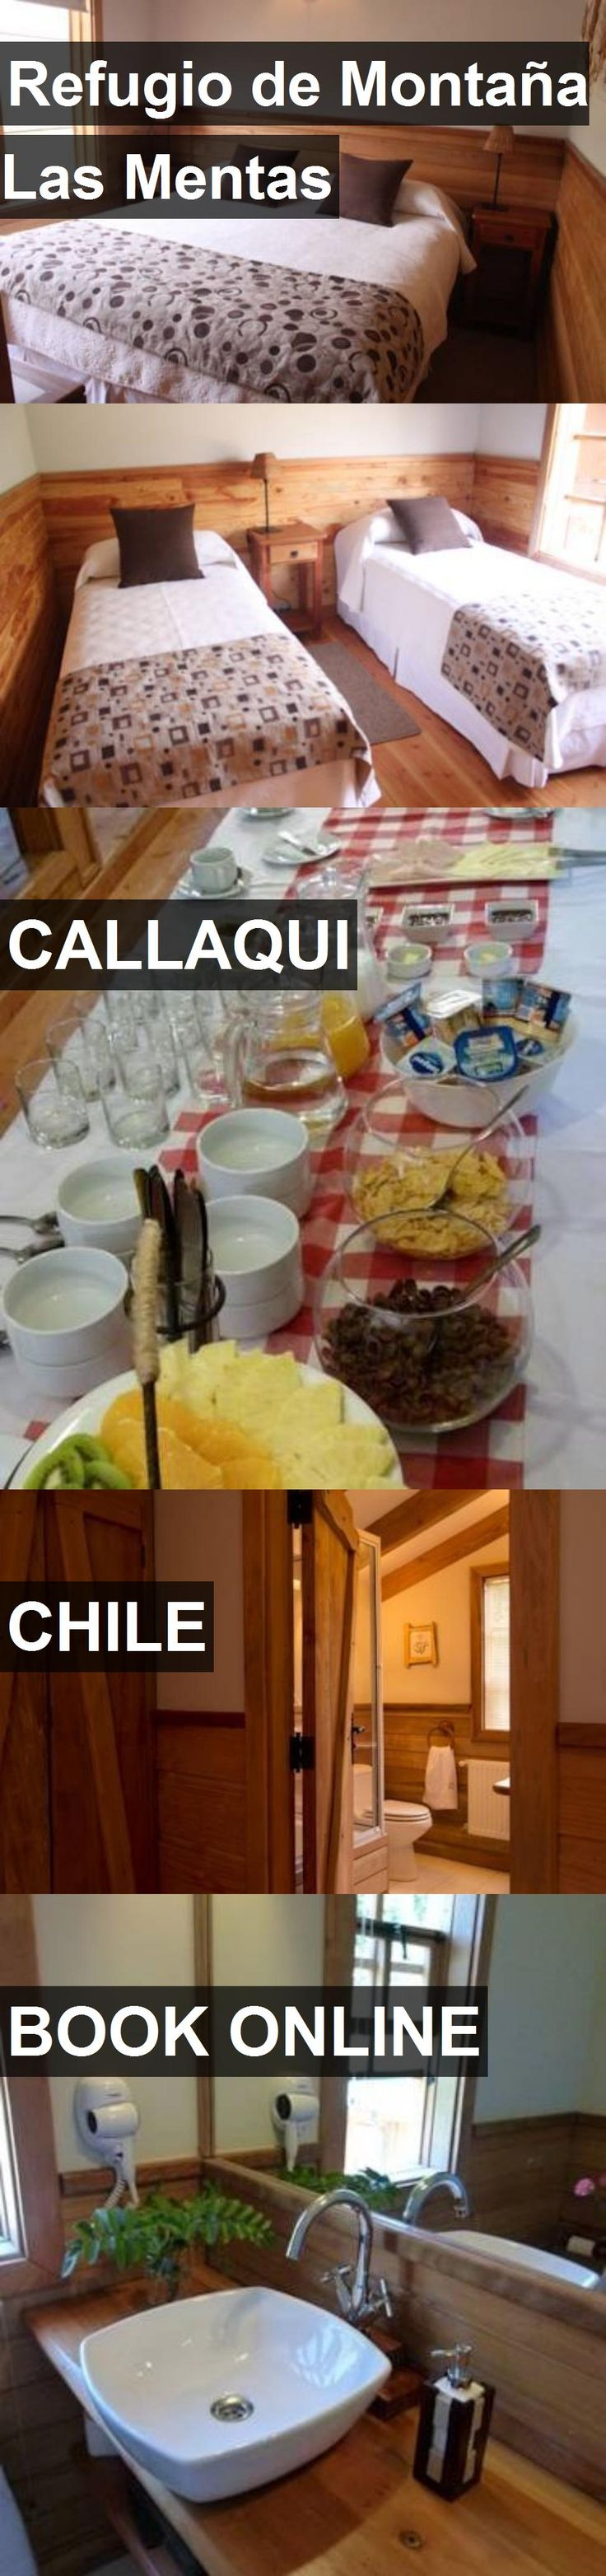 Hotel Refugio de Montaña Las Mentas in Callaqui, Chile. For more information, photos, reviews and best prices please follow the link. #Chile #Callaqui #travel #vacation #hotel